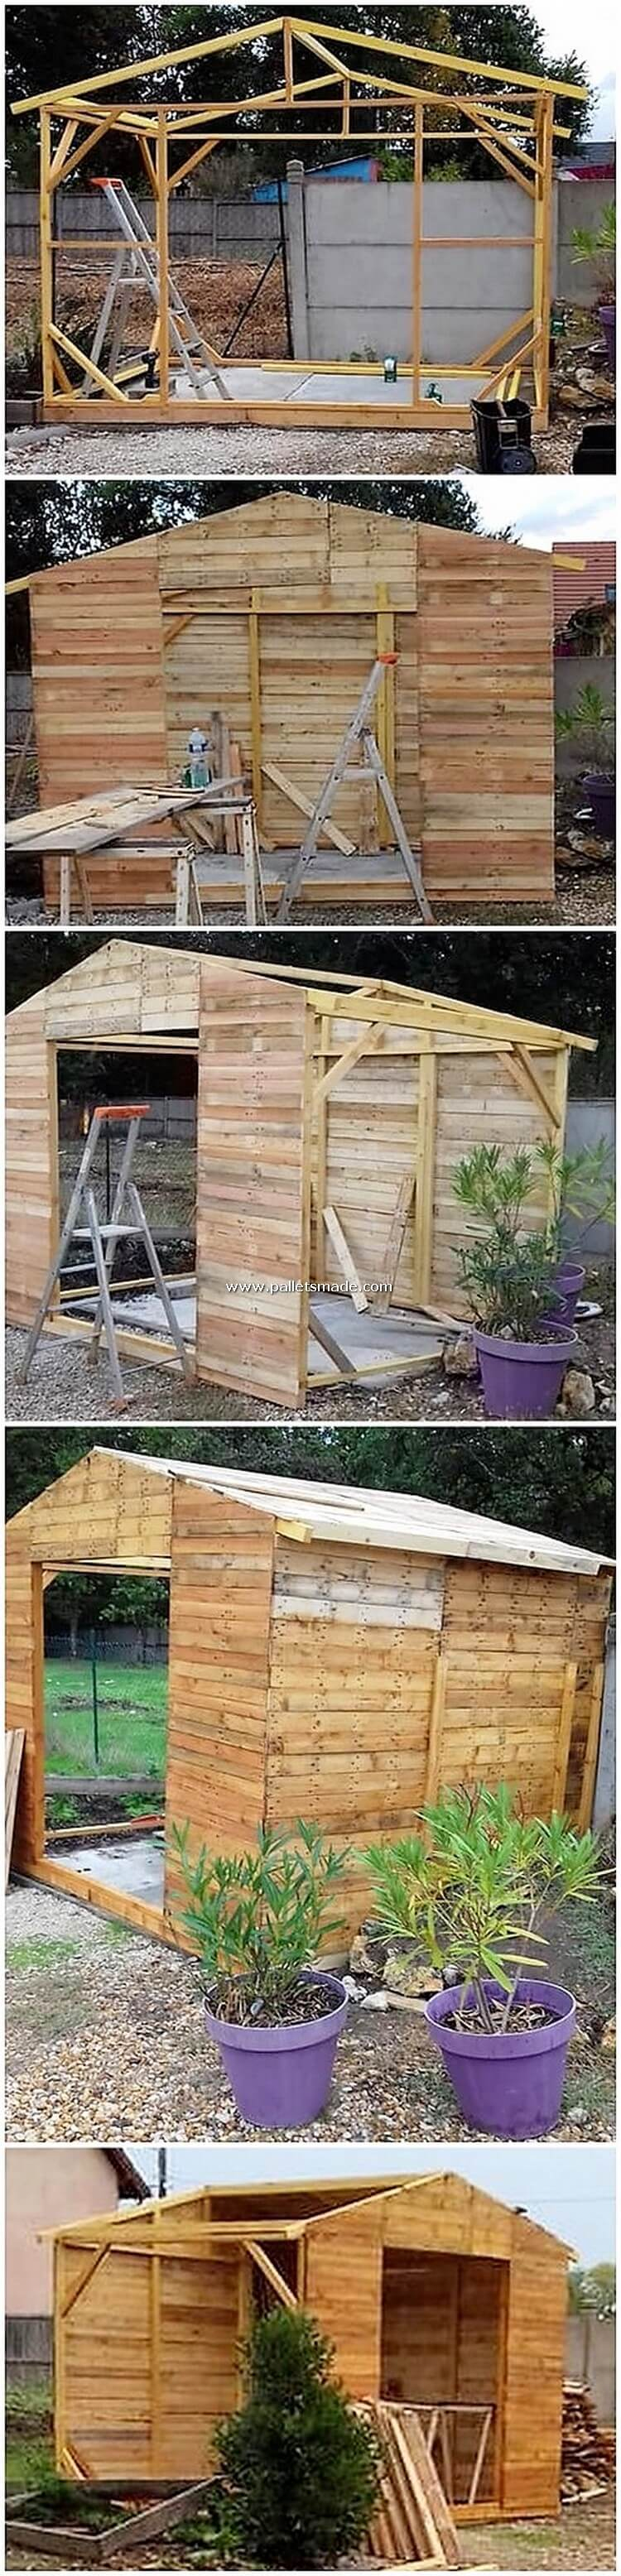 Pallet DIY House or Garden Shed